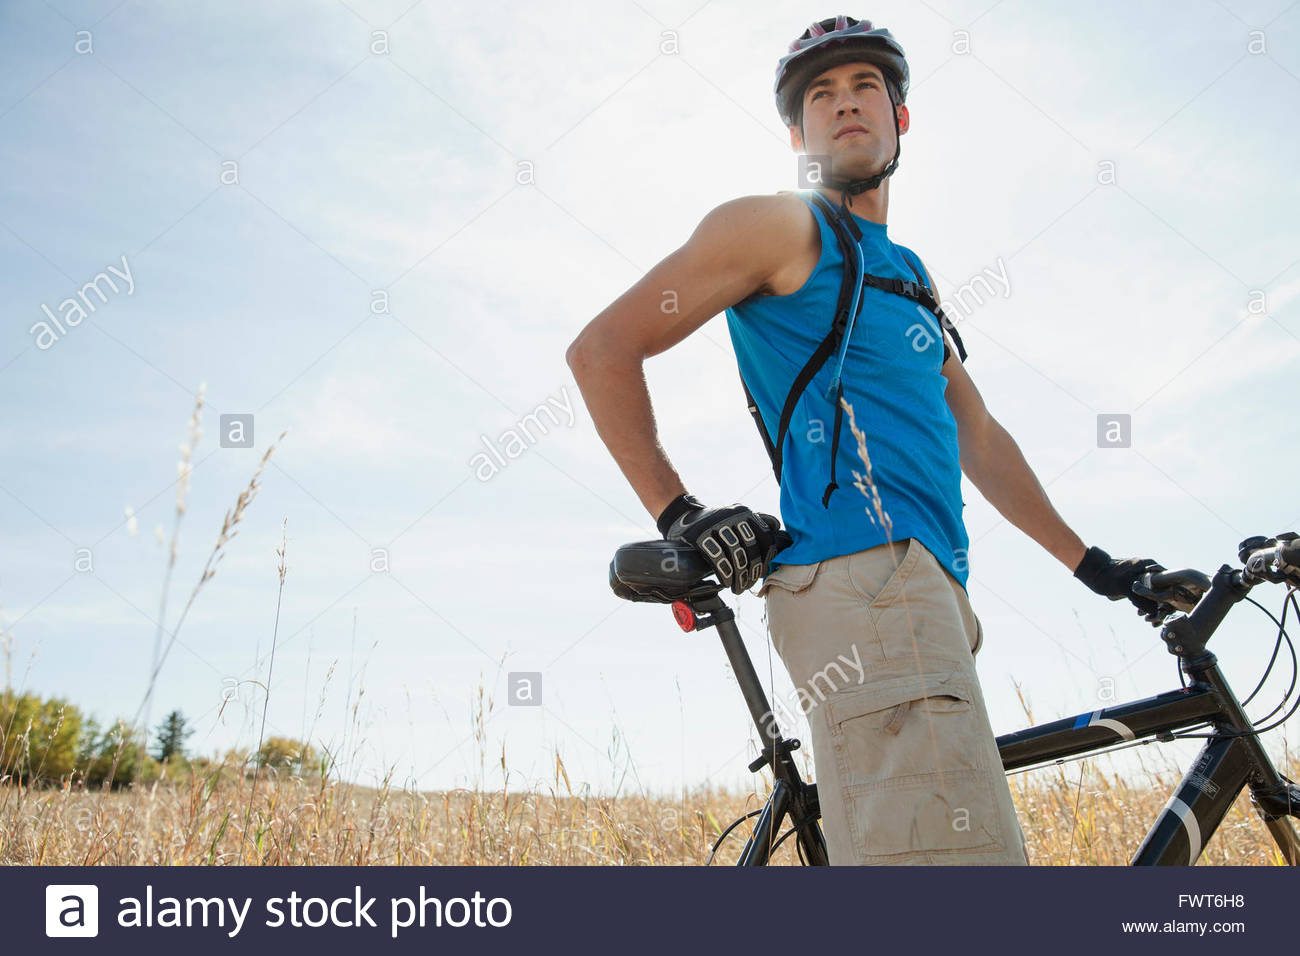 Young adult man with mountain bike in field. - Stock Image